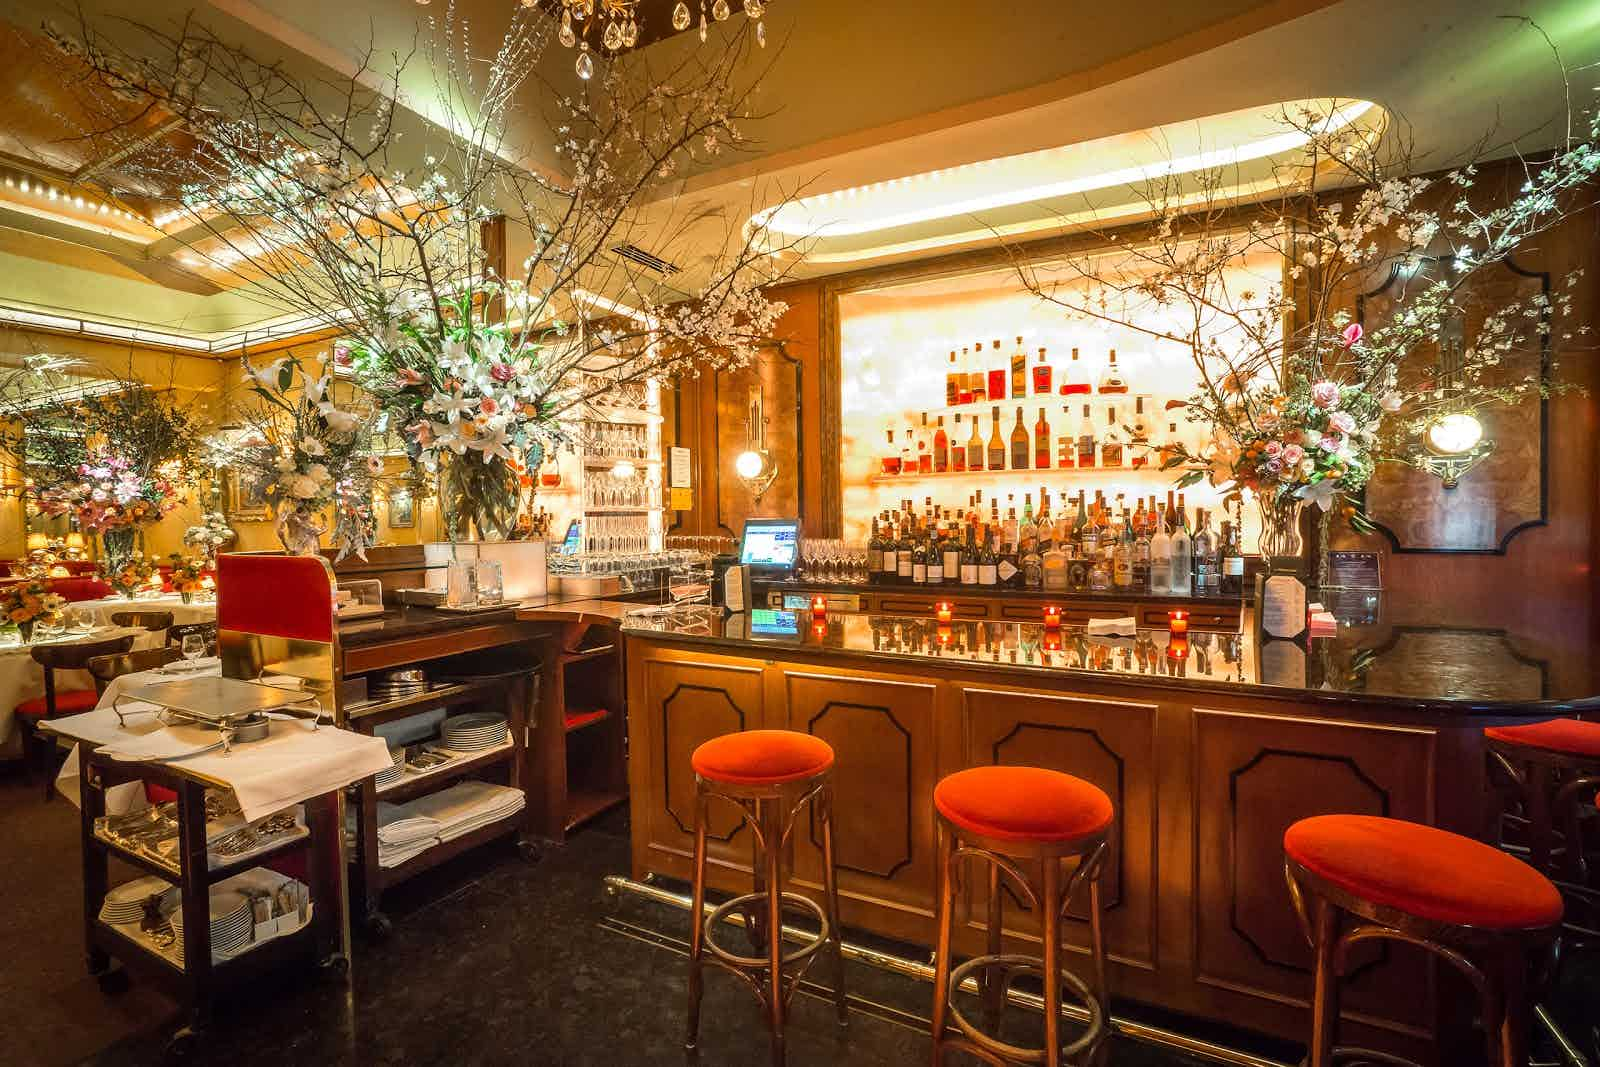 Bar Le French Flair la grenouille - new york   restaurant review - zagat